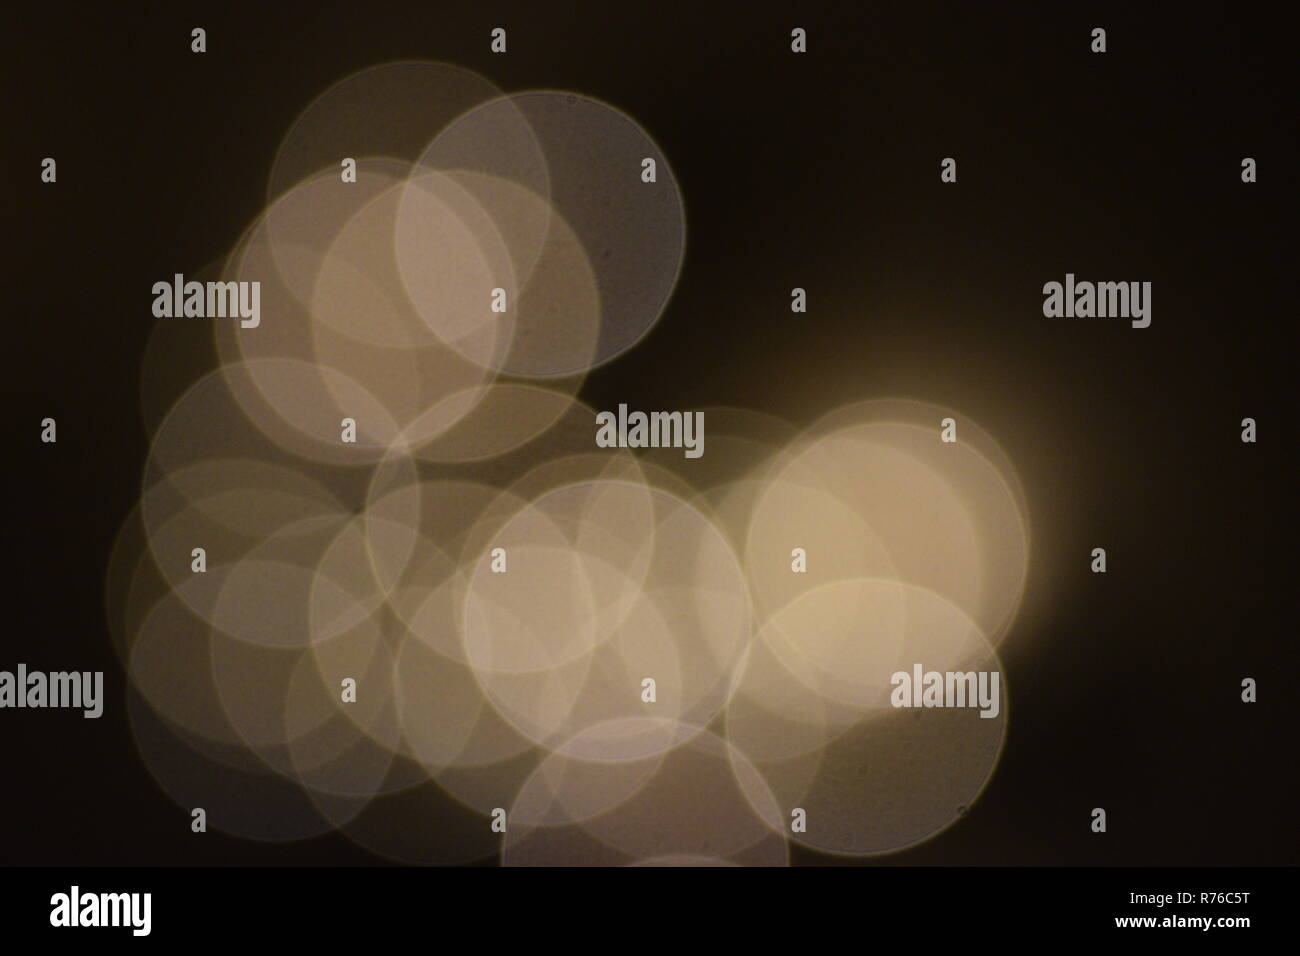 many bright blurry circles overlapping against dark background, design element - Stock Image